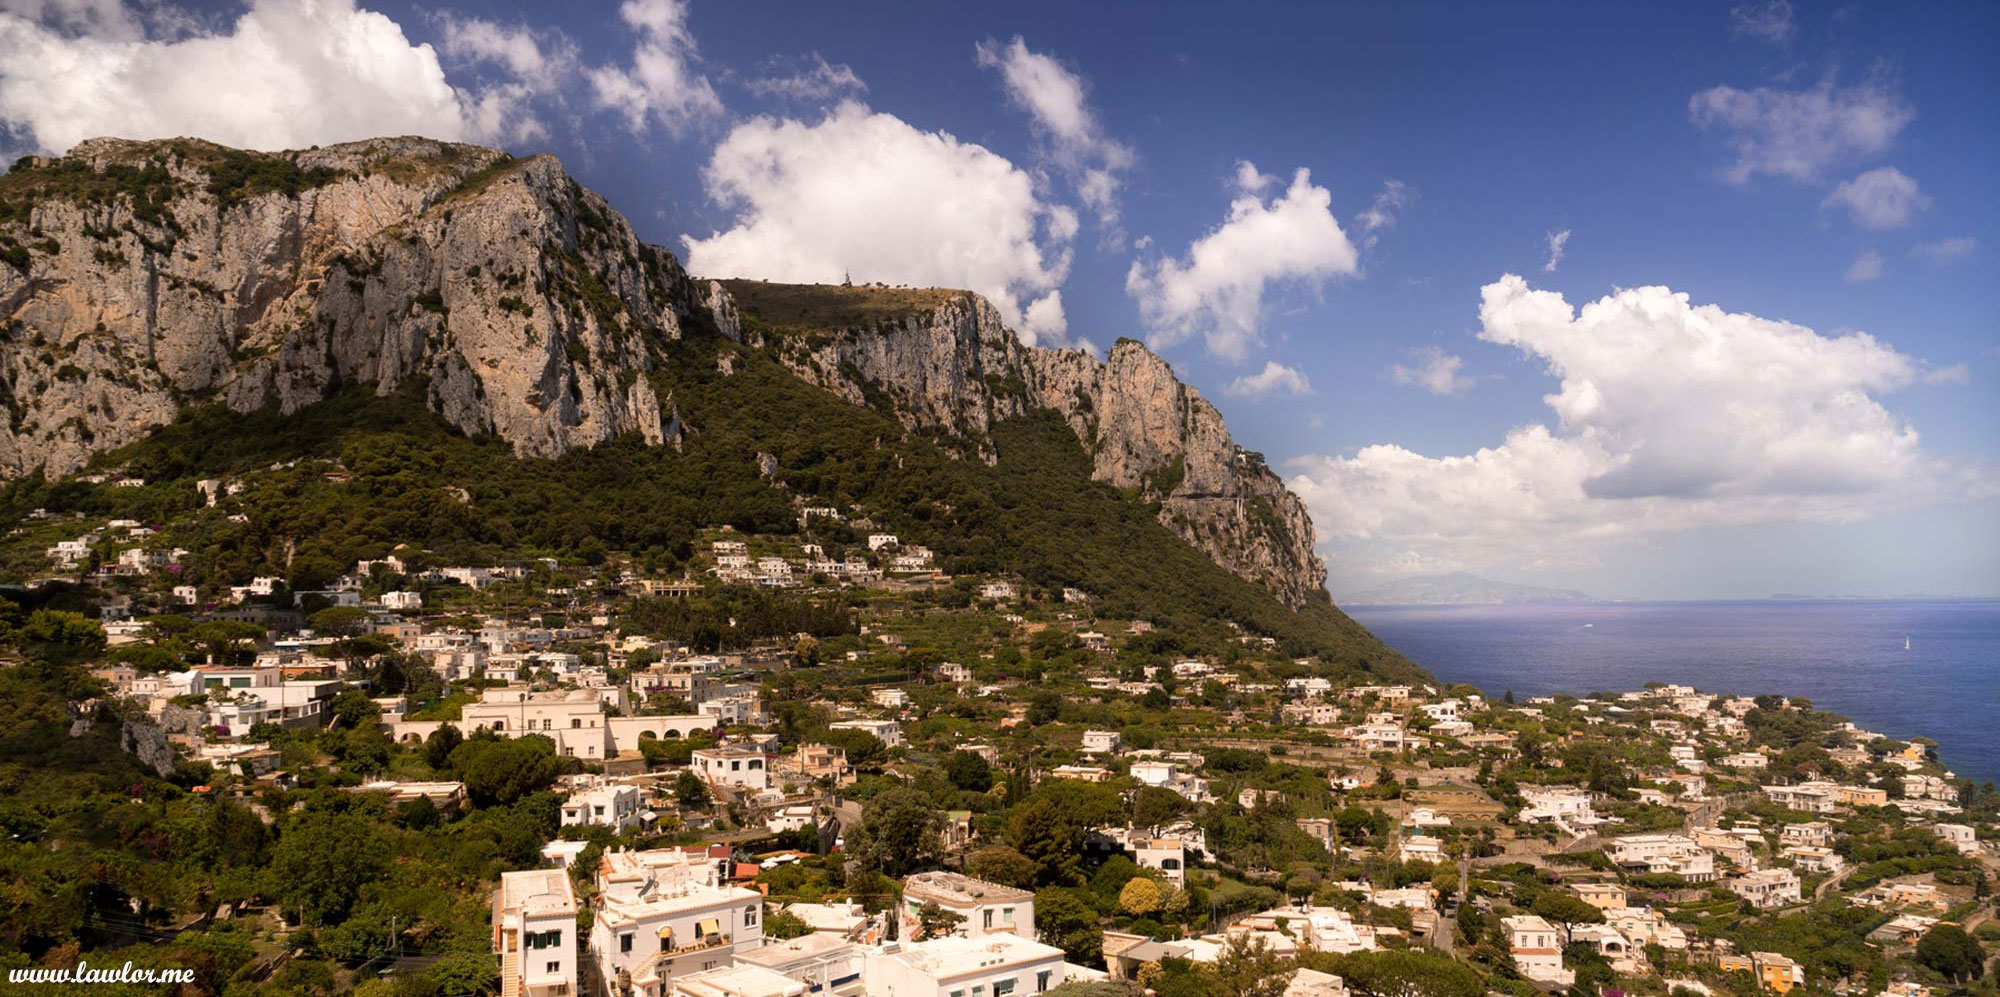 Isle of Capri, Napoli - Italy, Free Landscape Photography, free landscape photography, free landscape photos, free nature images, free HD images, free high definition stock images, free stock images download